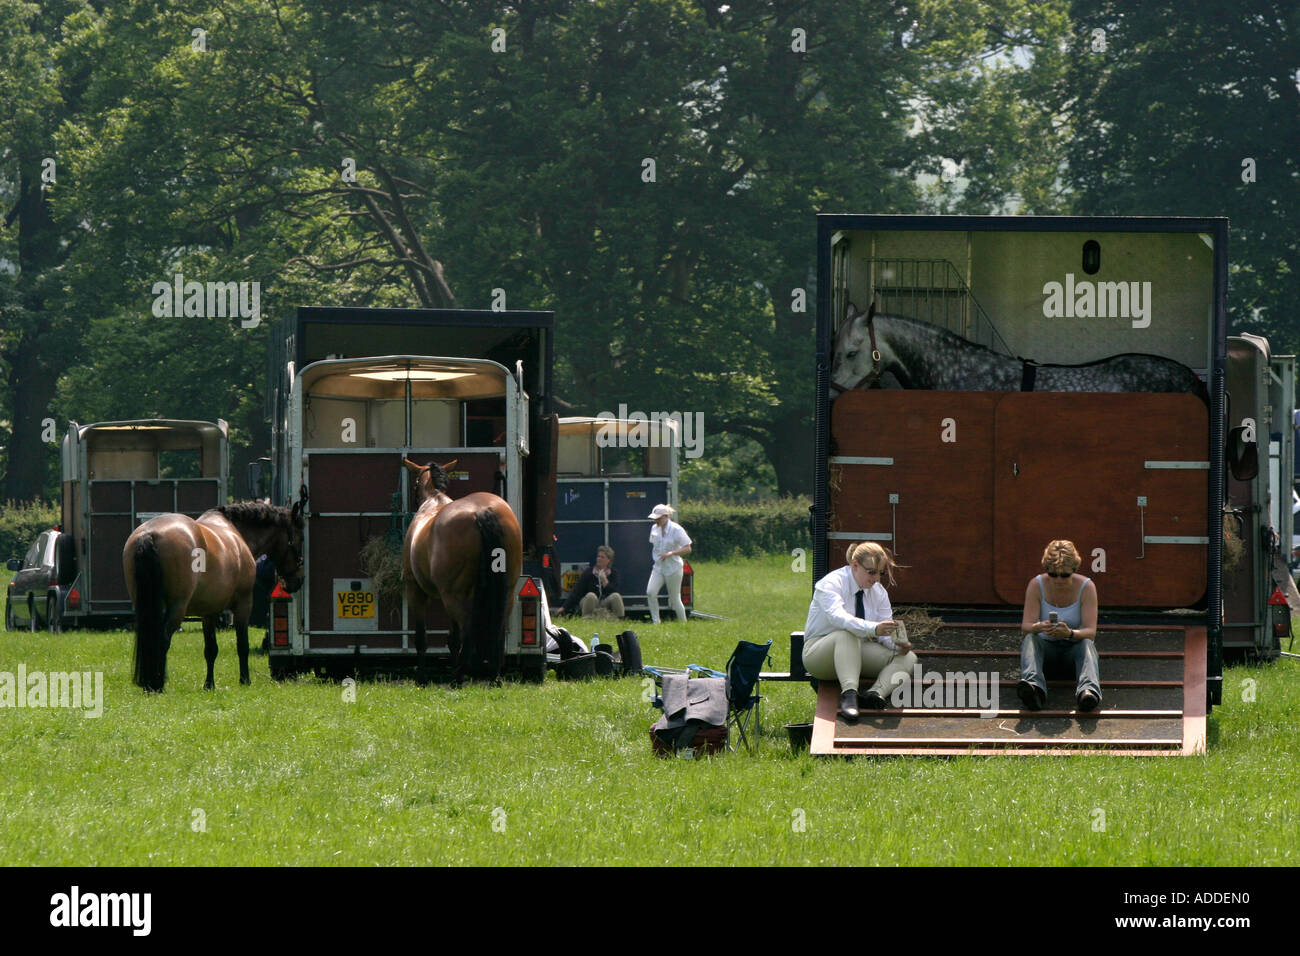 Hambleden Riders take a break preparing for the South Oxfordshire Riding Club's Open Show - Stock Image